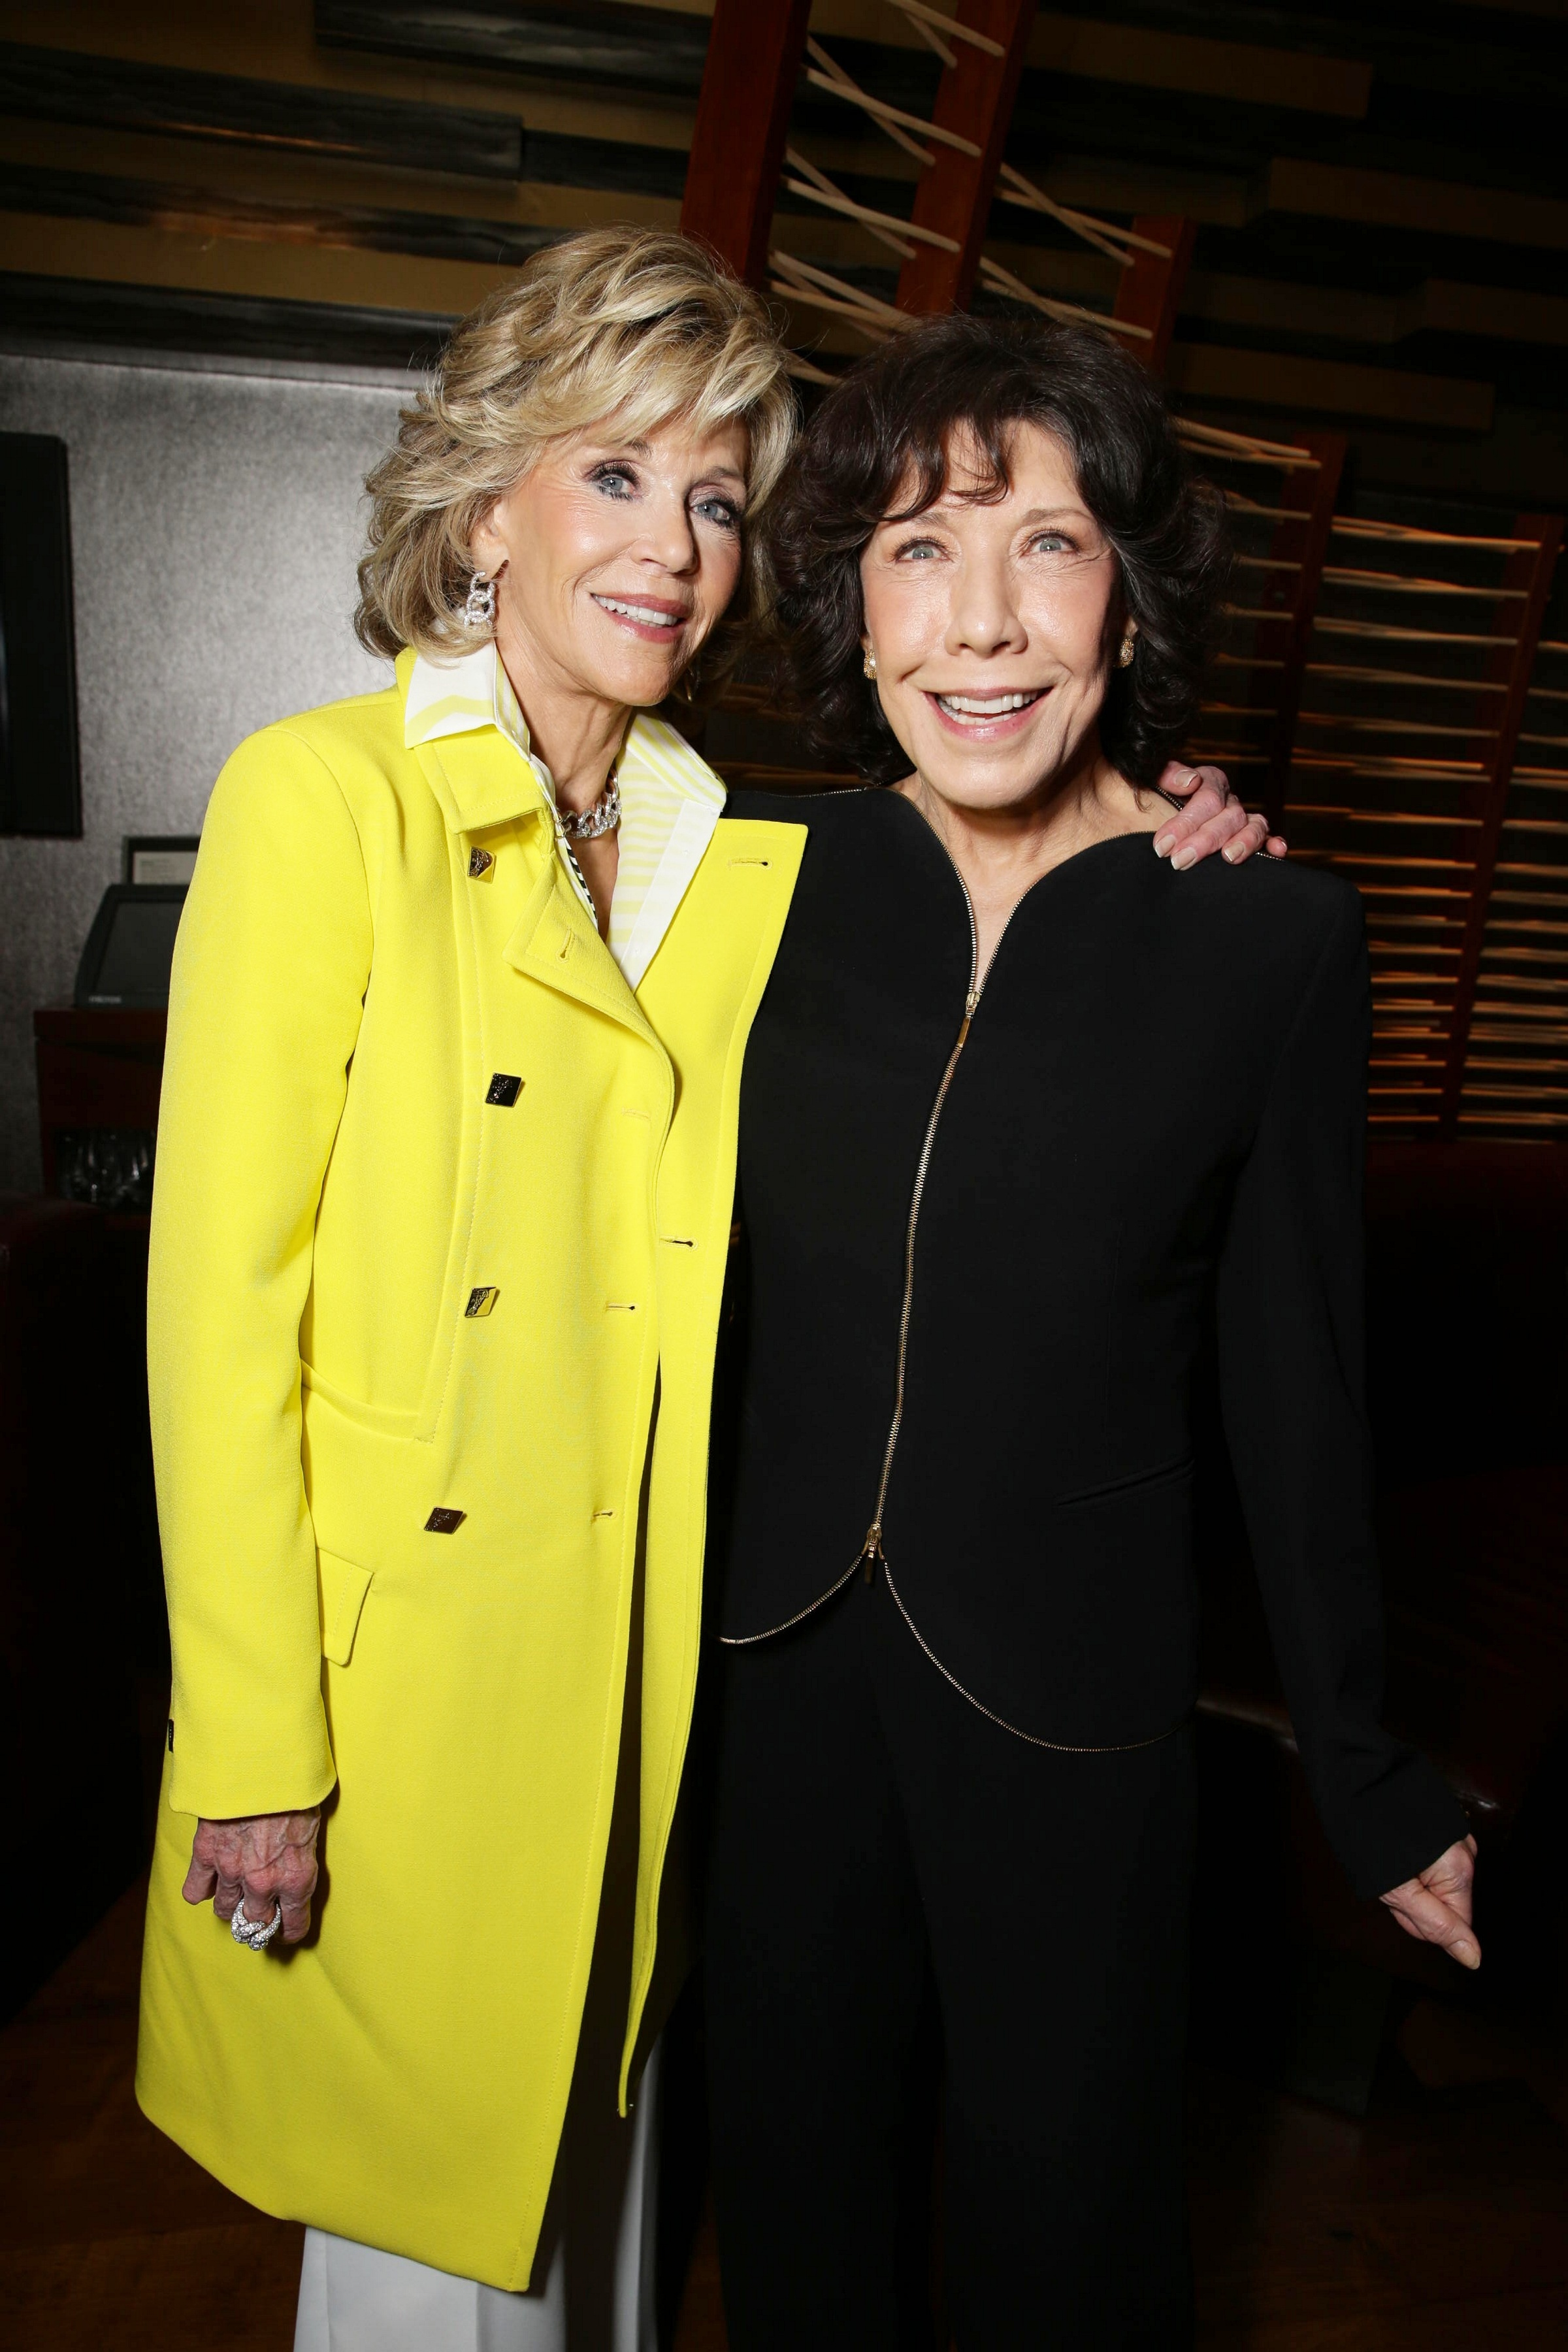 Jane Fonda and Lily Tomlin at the World Premiere of  Grace and Frankie  in Los Angeles on April 29, 2015.